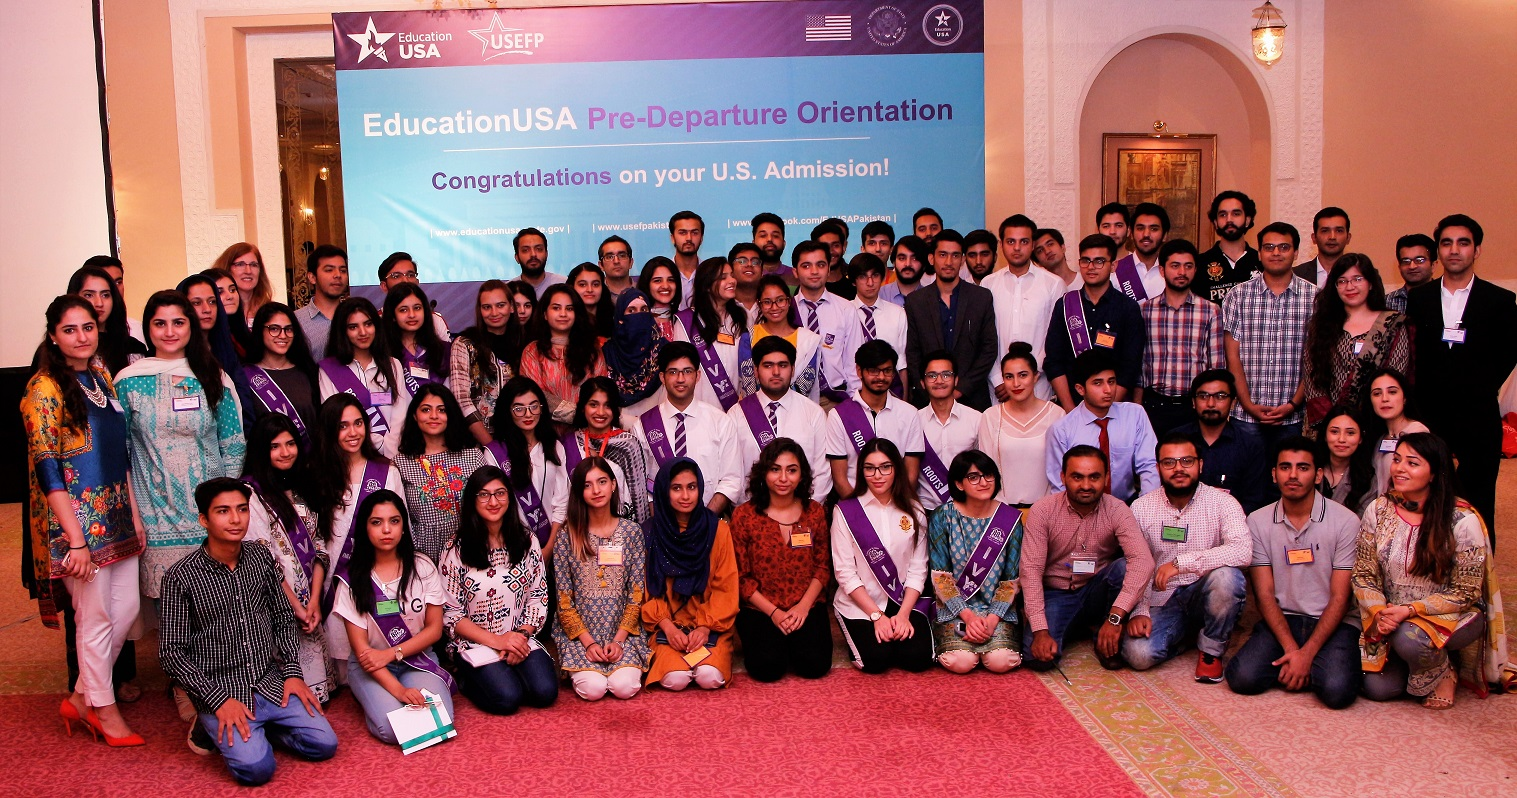 USEFP hosts a PDO for over 300 students heading to the U.S. for higher studies